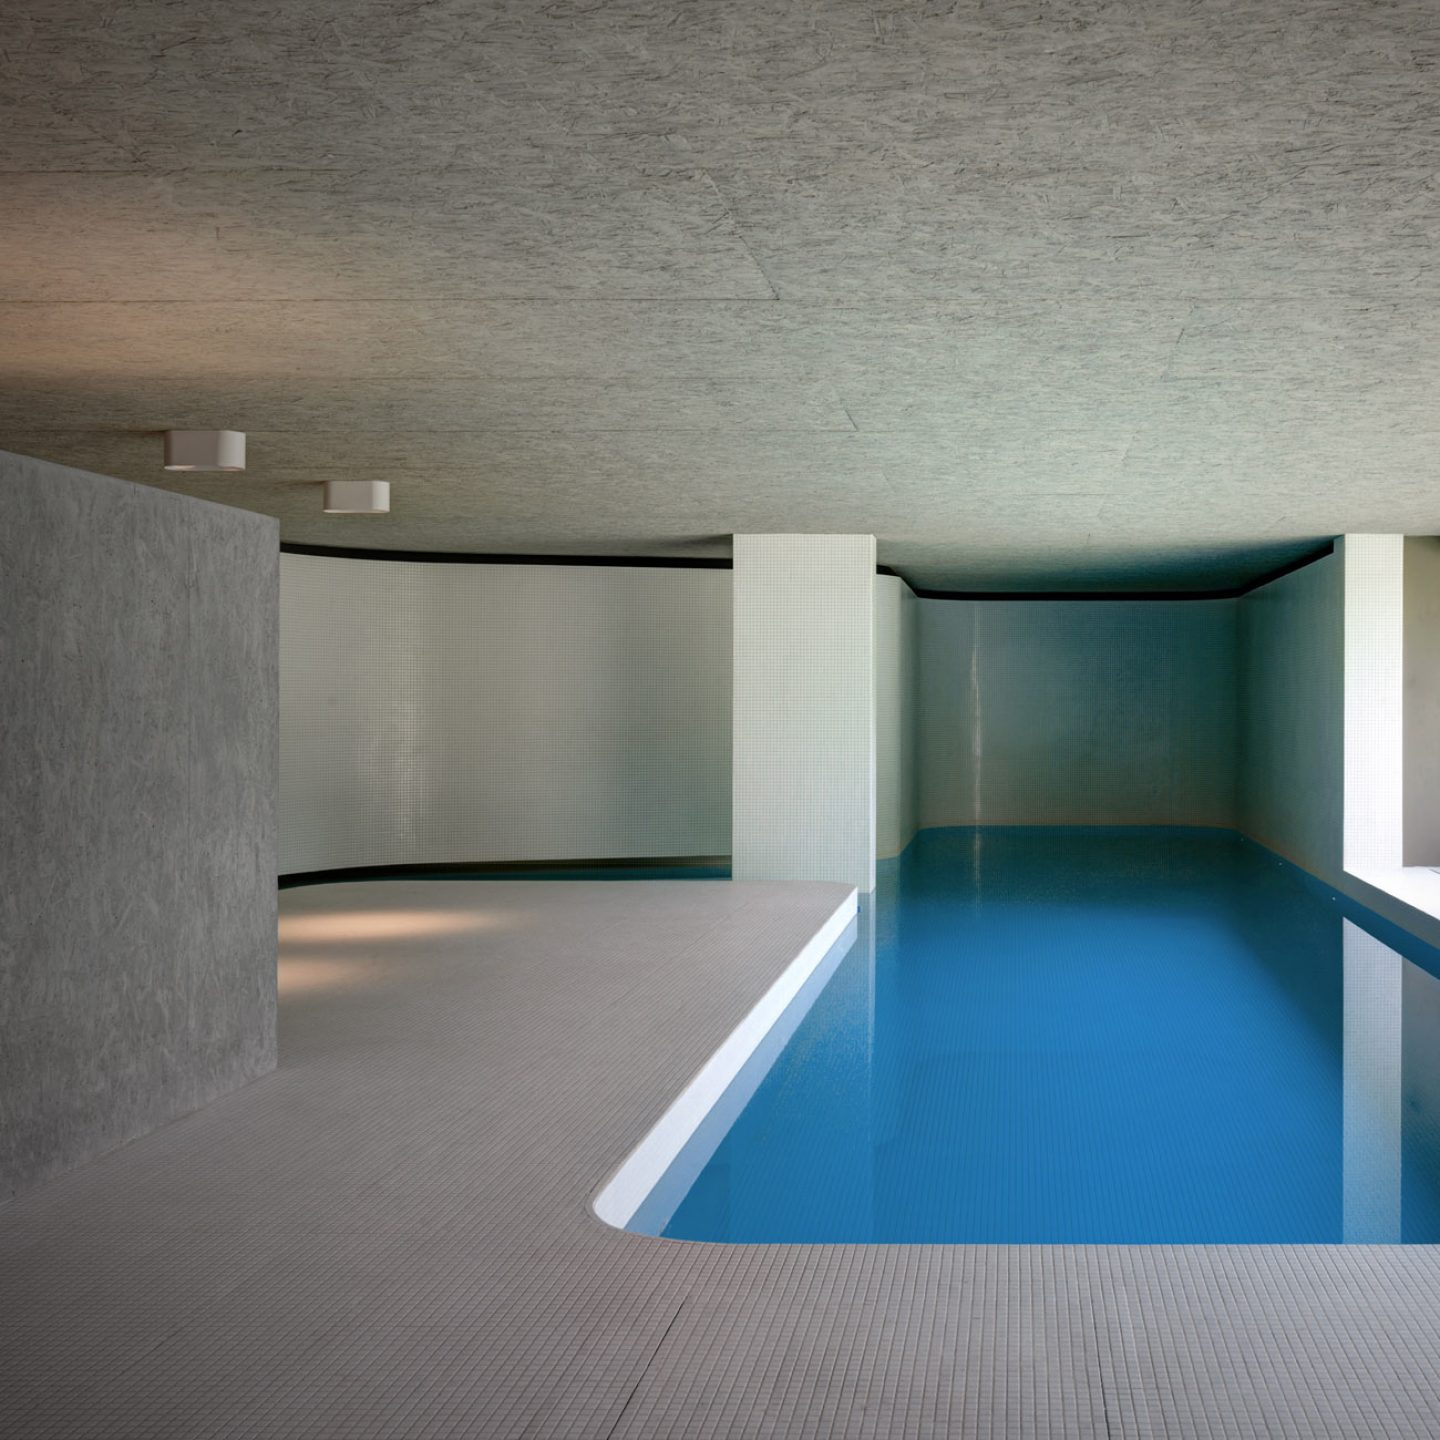 architecture_lapiscinadelroccolo_swimmingpool_pavillion_10